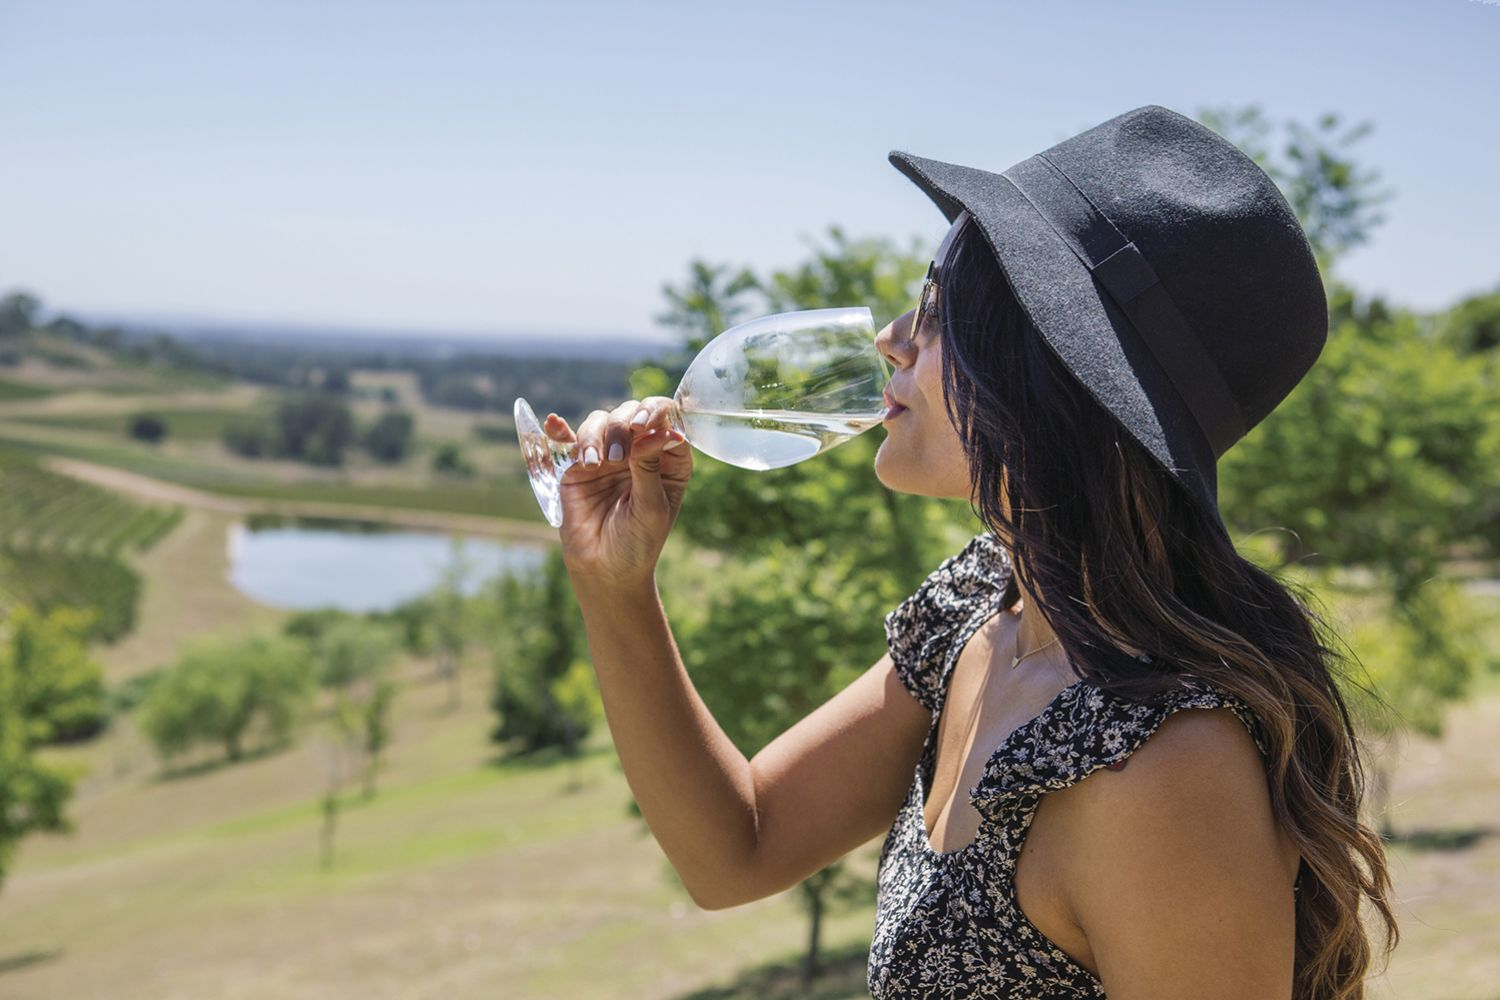 Woman enjoying the scenic views and wine at Bistro Molines, Mount View in the Hunter Valley